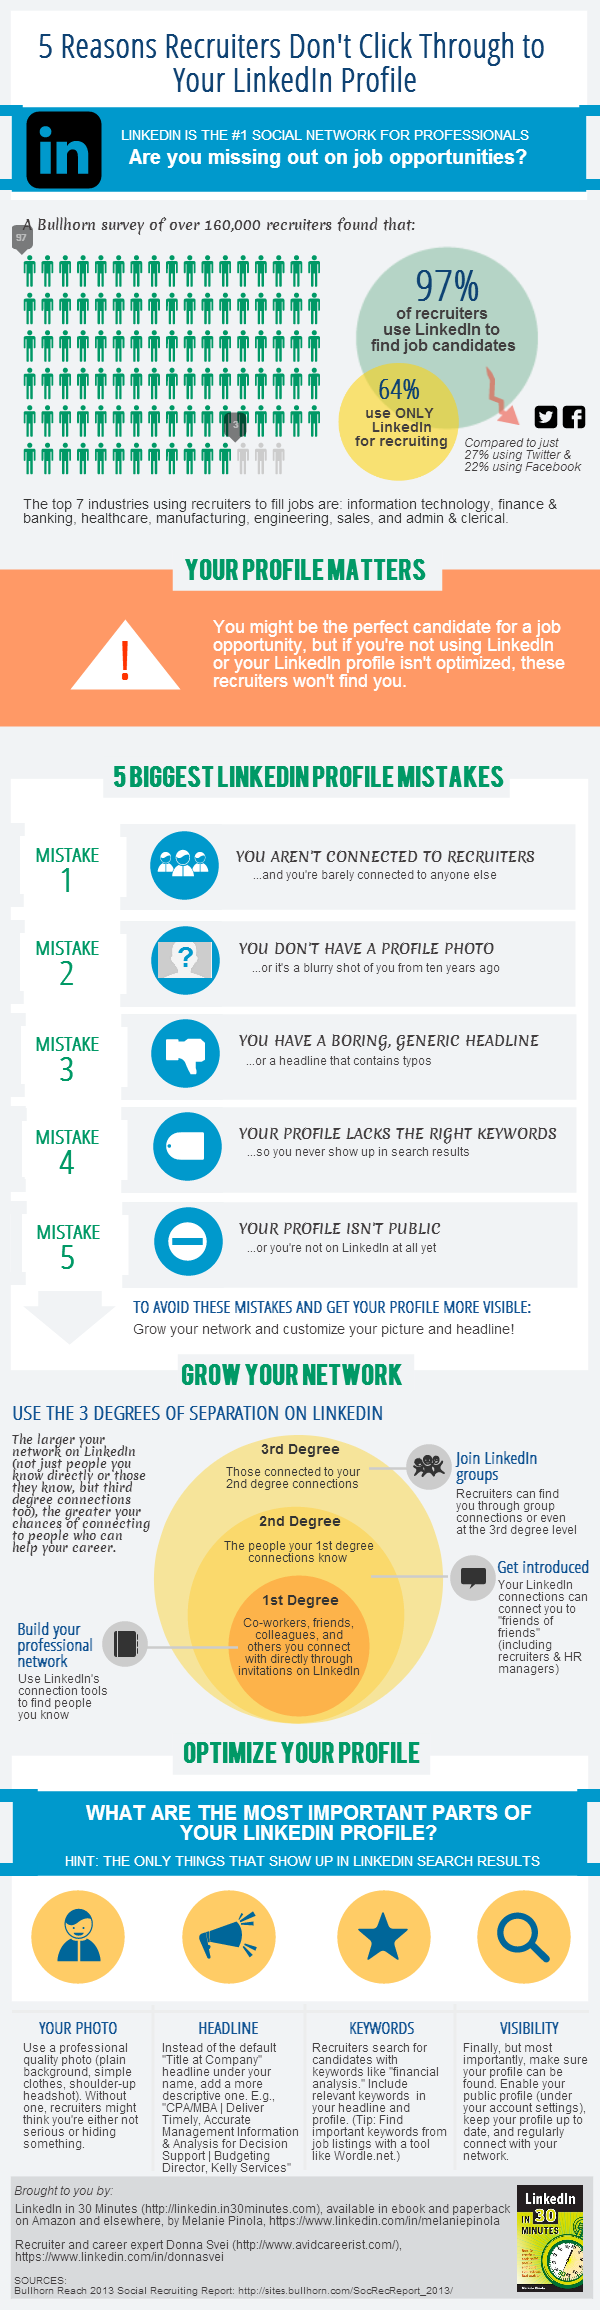 This is an infographic depicting the 5 reasons linkedin recruiters don't click on your profile.